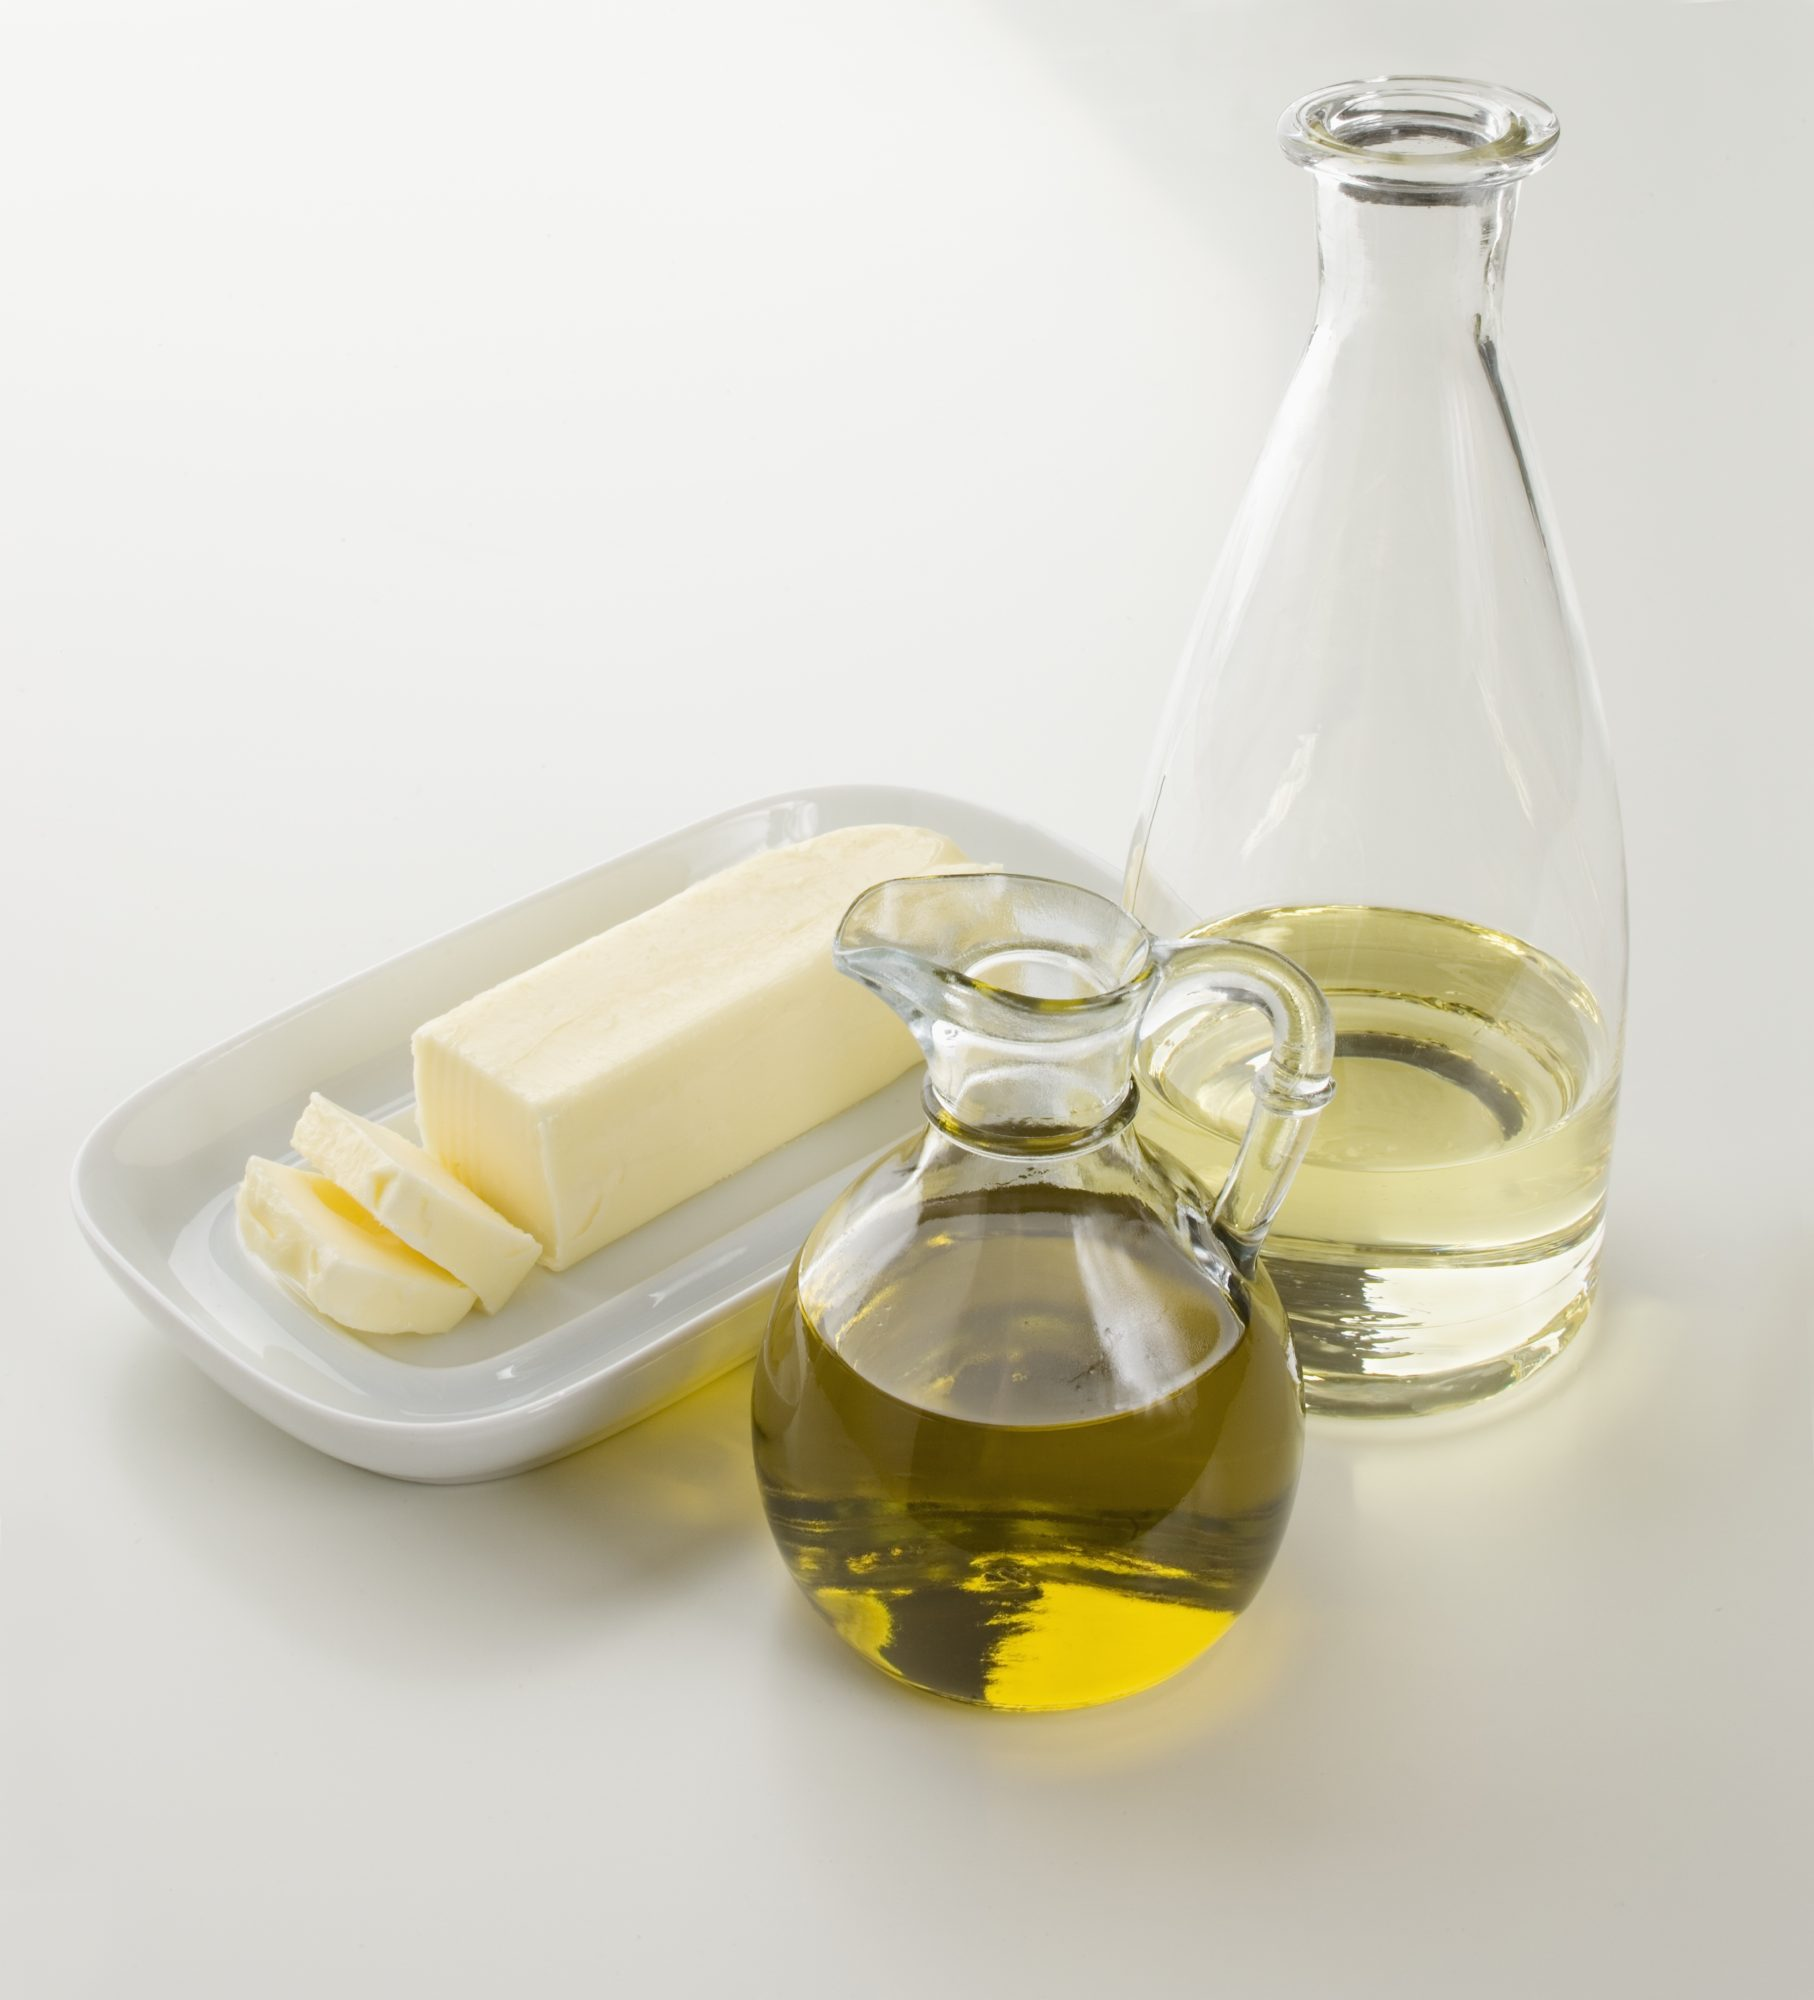 Oil, Butter, and Water on Table